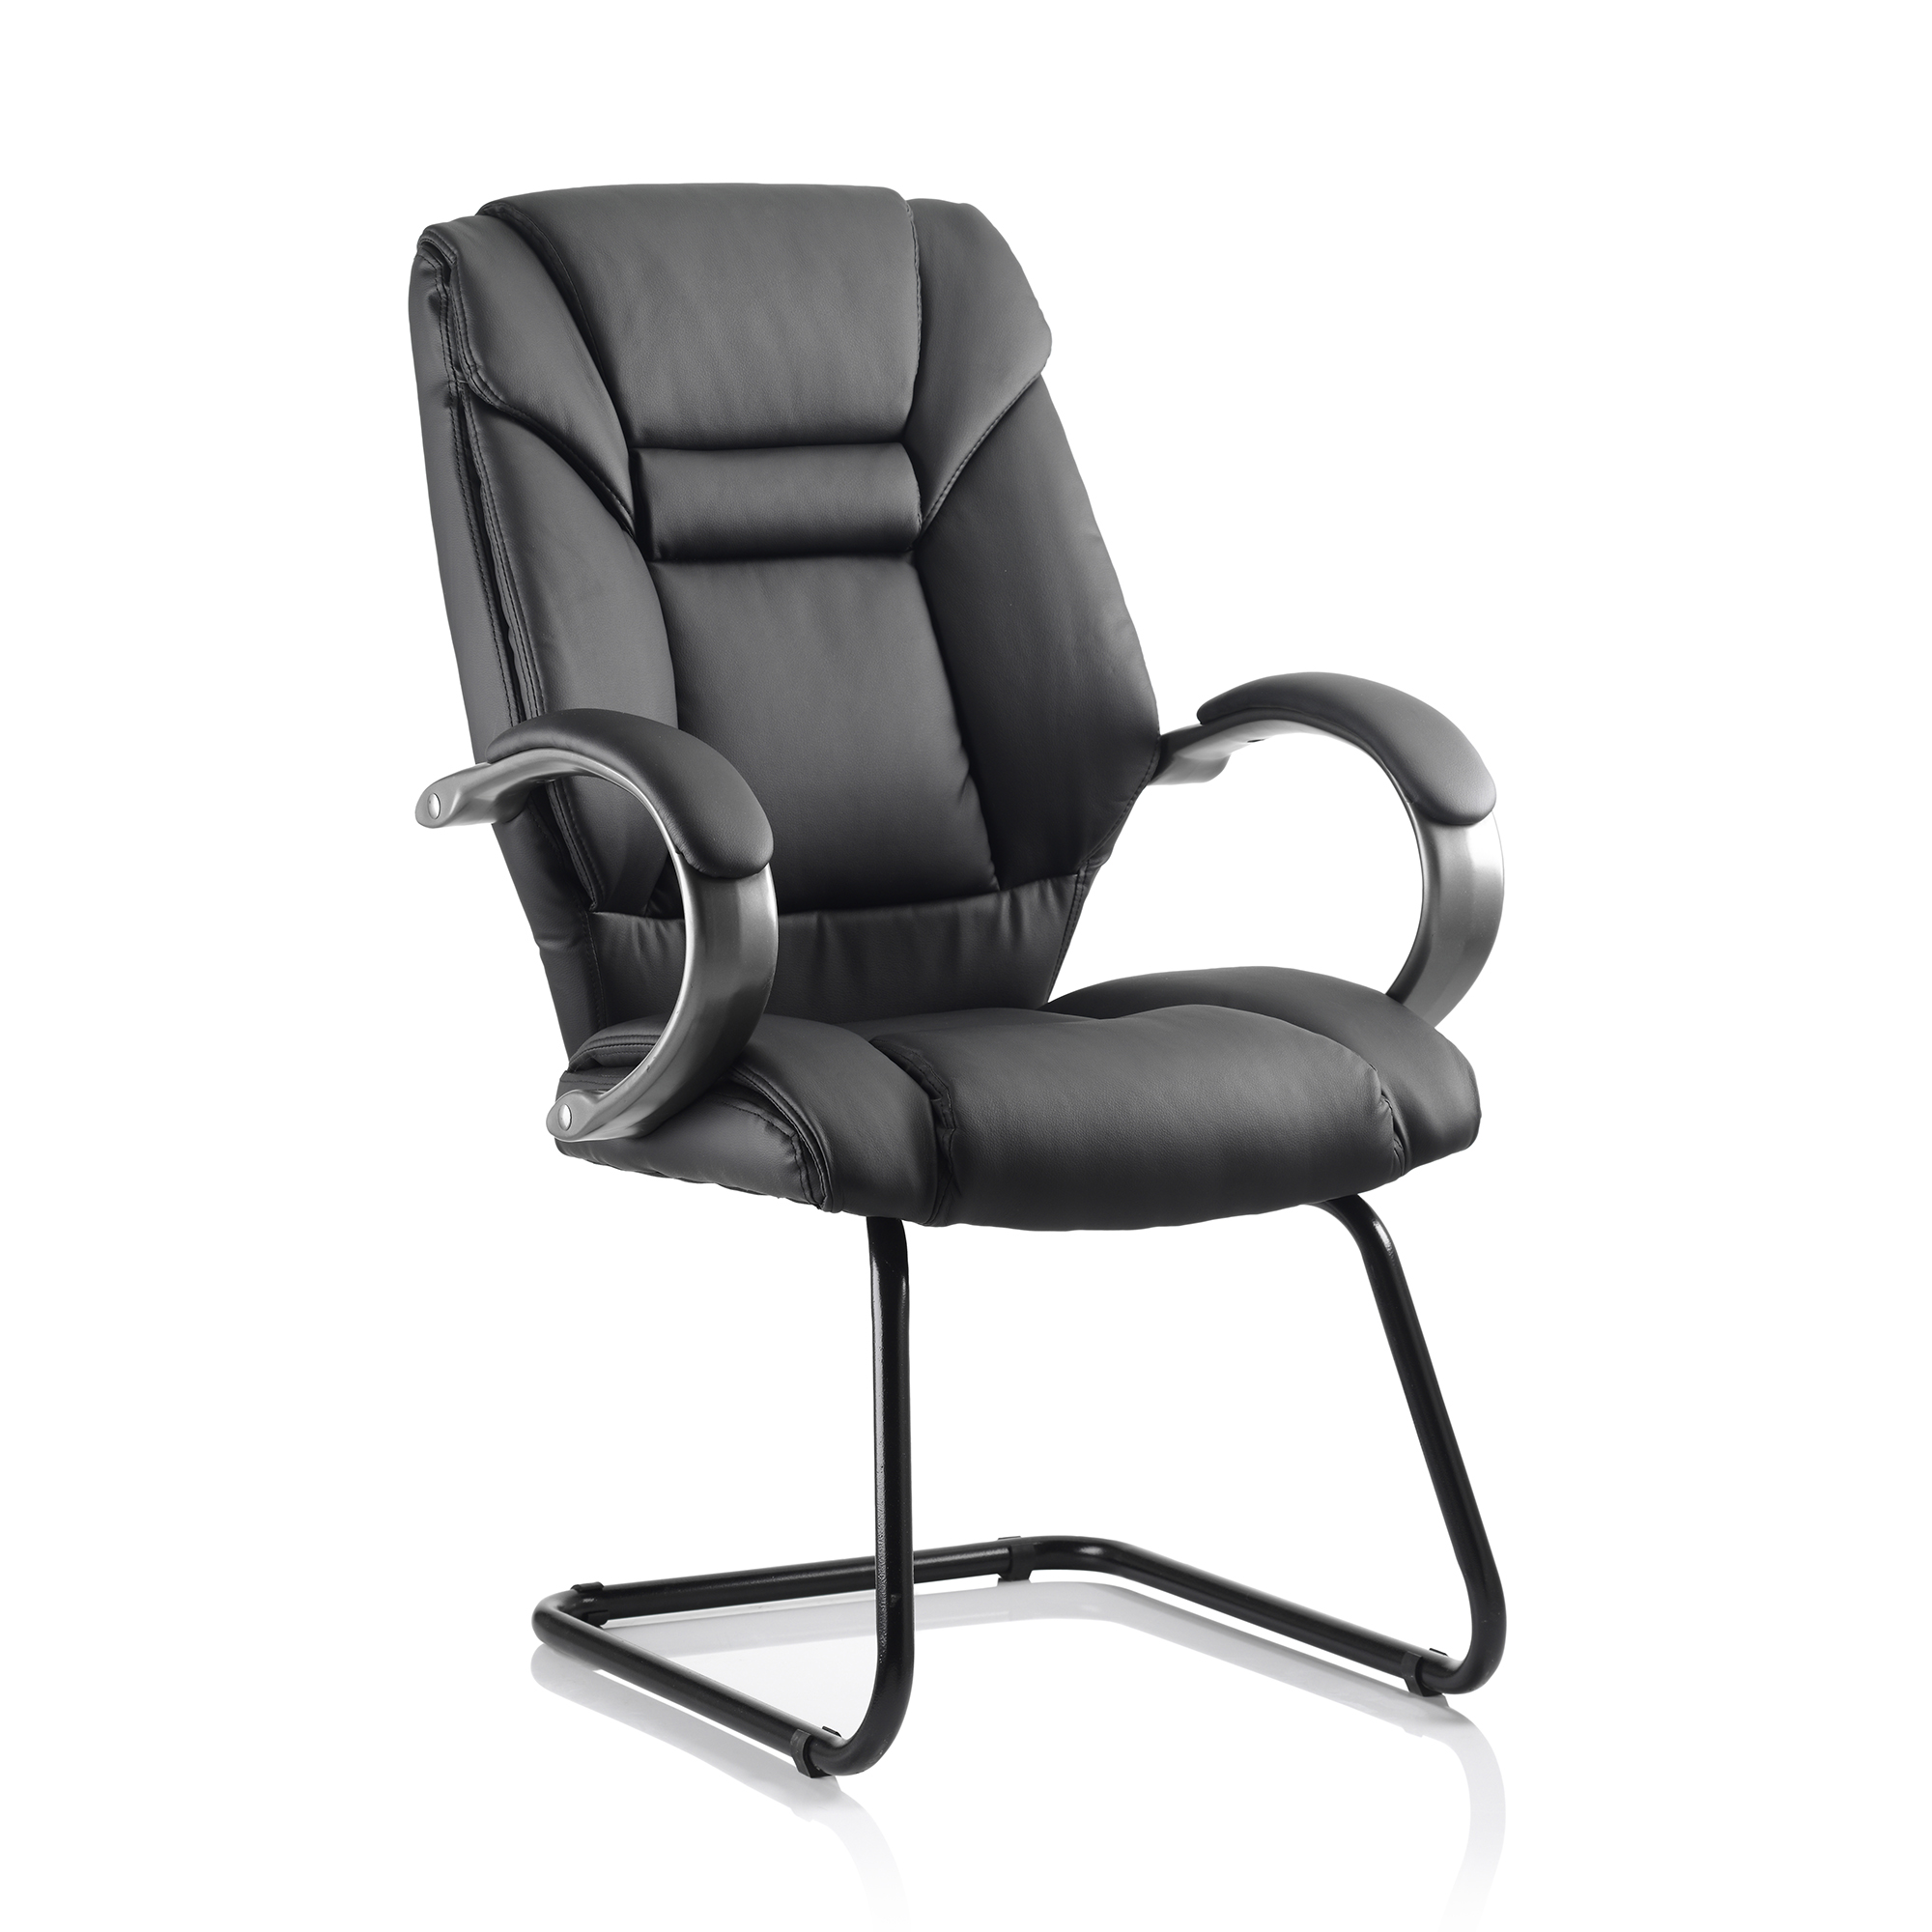 Guest seating Trexus Galloway Cantilever Chair With Arms Leather Black Ref KC0119